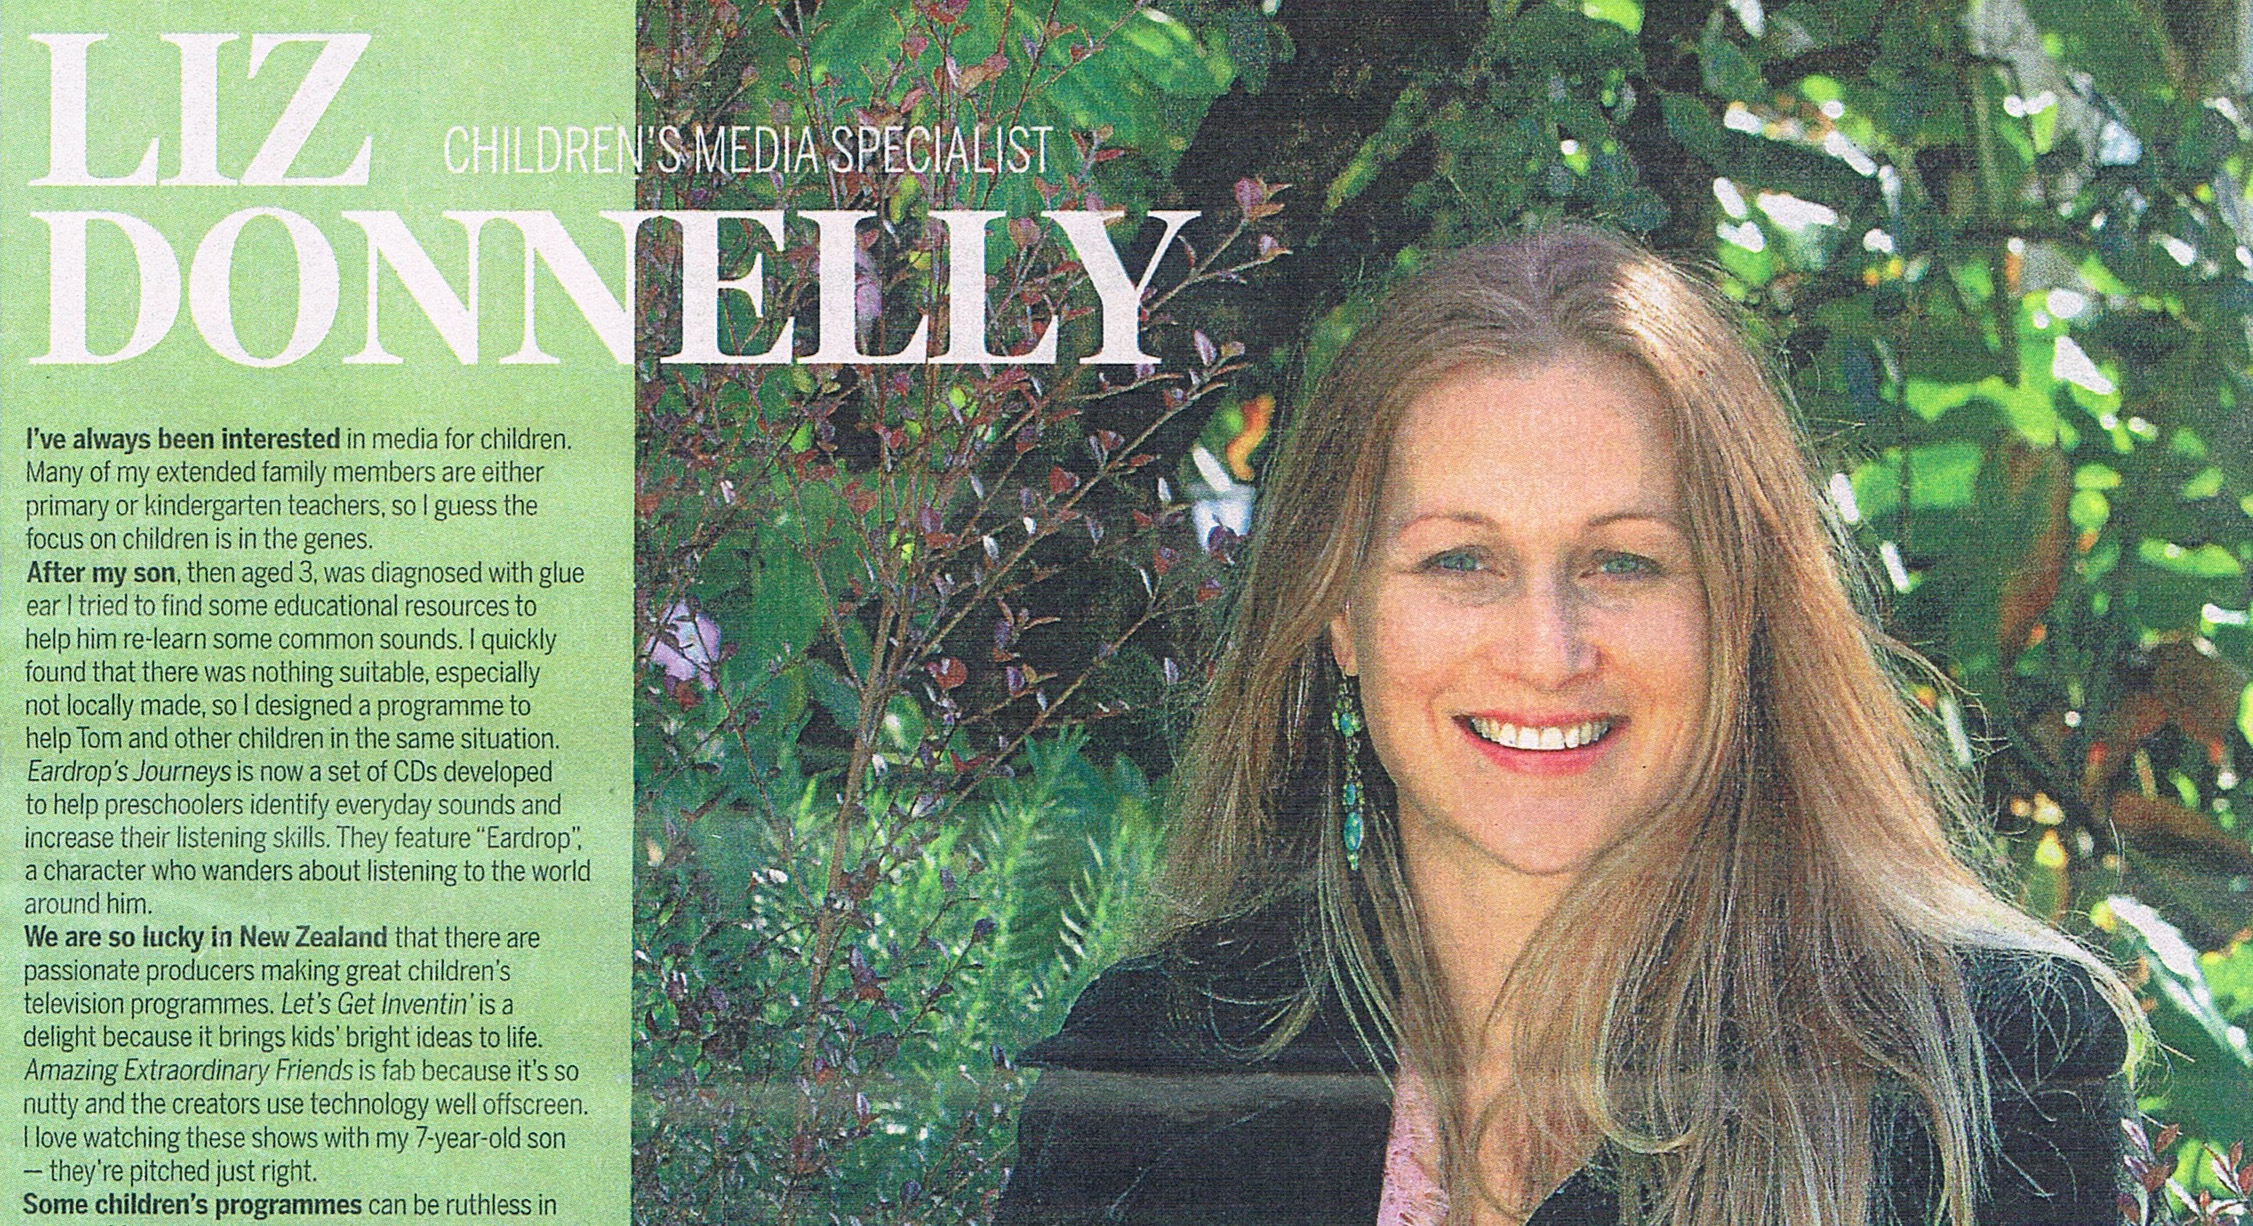 Liz Donnelly profile article in NZ Herald